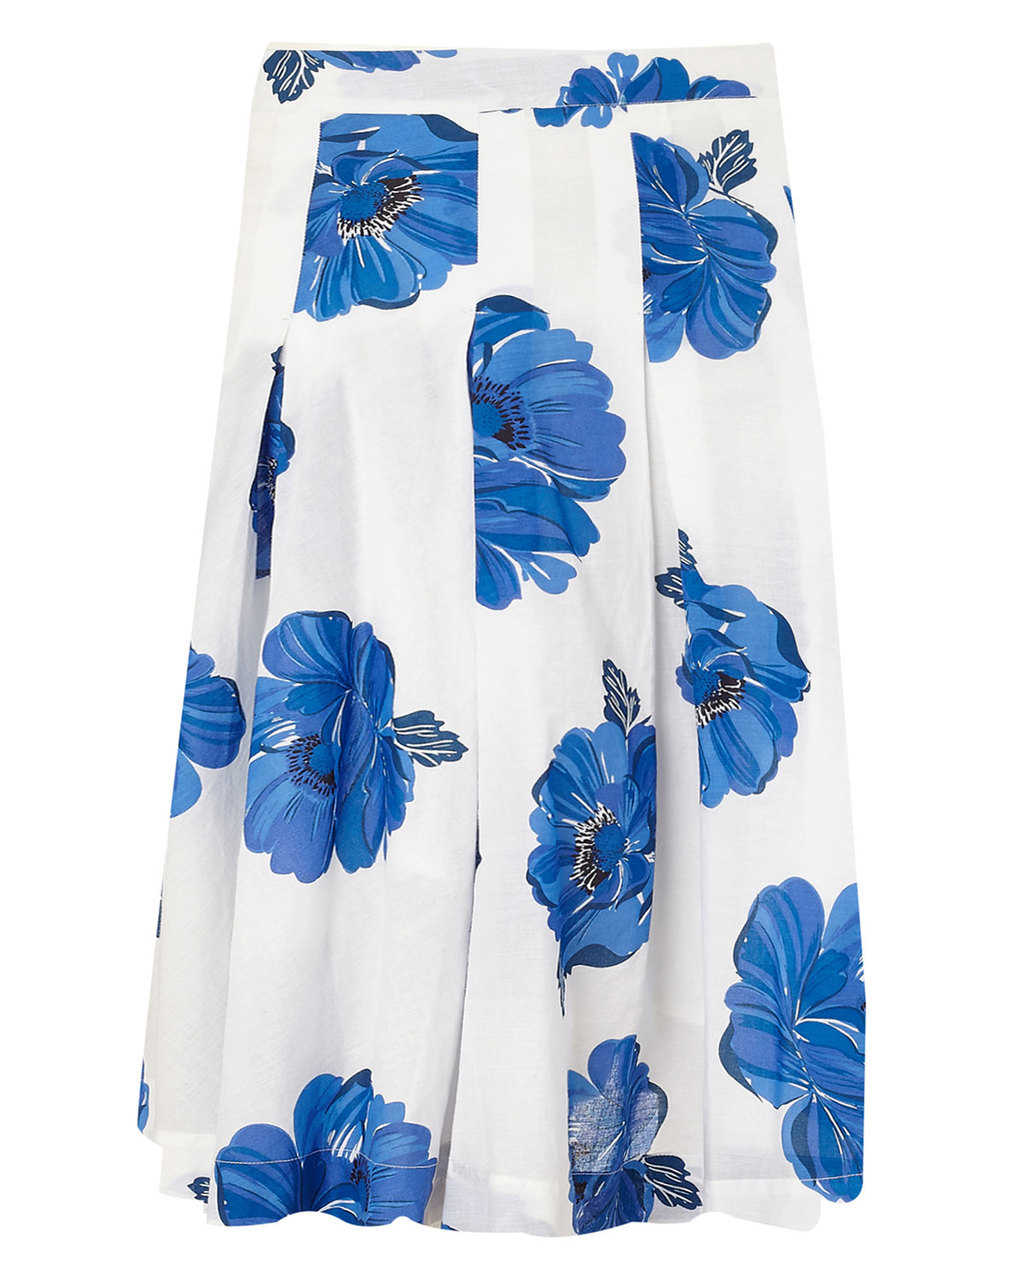 Iona Floral Print Cotton Skirt - length: below the knee; fit: loose/voluminous; waist: high rise; secondary colour: white; predominant colour: diva blue; occasions: casual, occasion; style: a-line; fibres: cotton - 100%; hip detail: soft pleats at hip/draping at hip/flared at hip; waist detail: narrow waistband; pattern type: fabric; pattern: florals; texture group: woven light midweight; season: s/s 2015; pattern size: big & busy (bottom); wardrobe: highlight